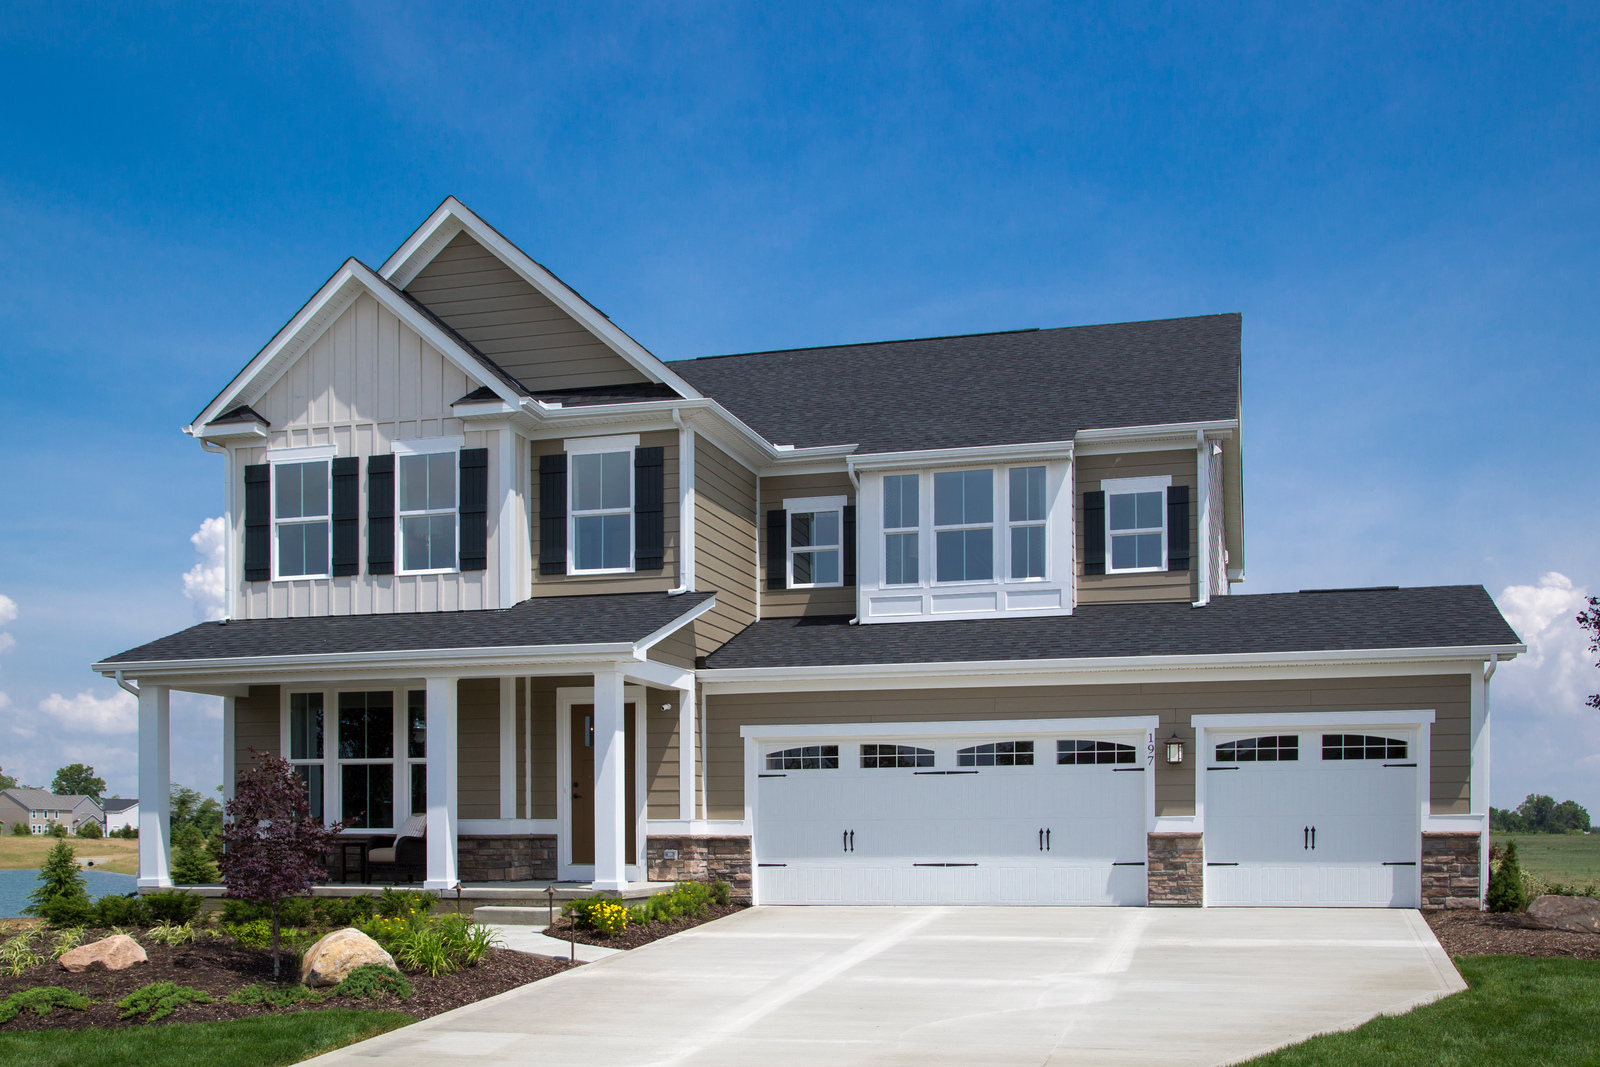 new homes for sale at glenross north in delaware oh within the rh ryanhomes com